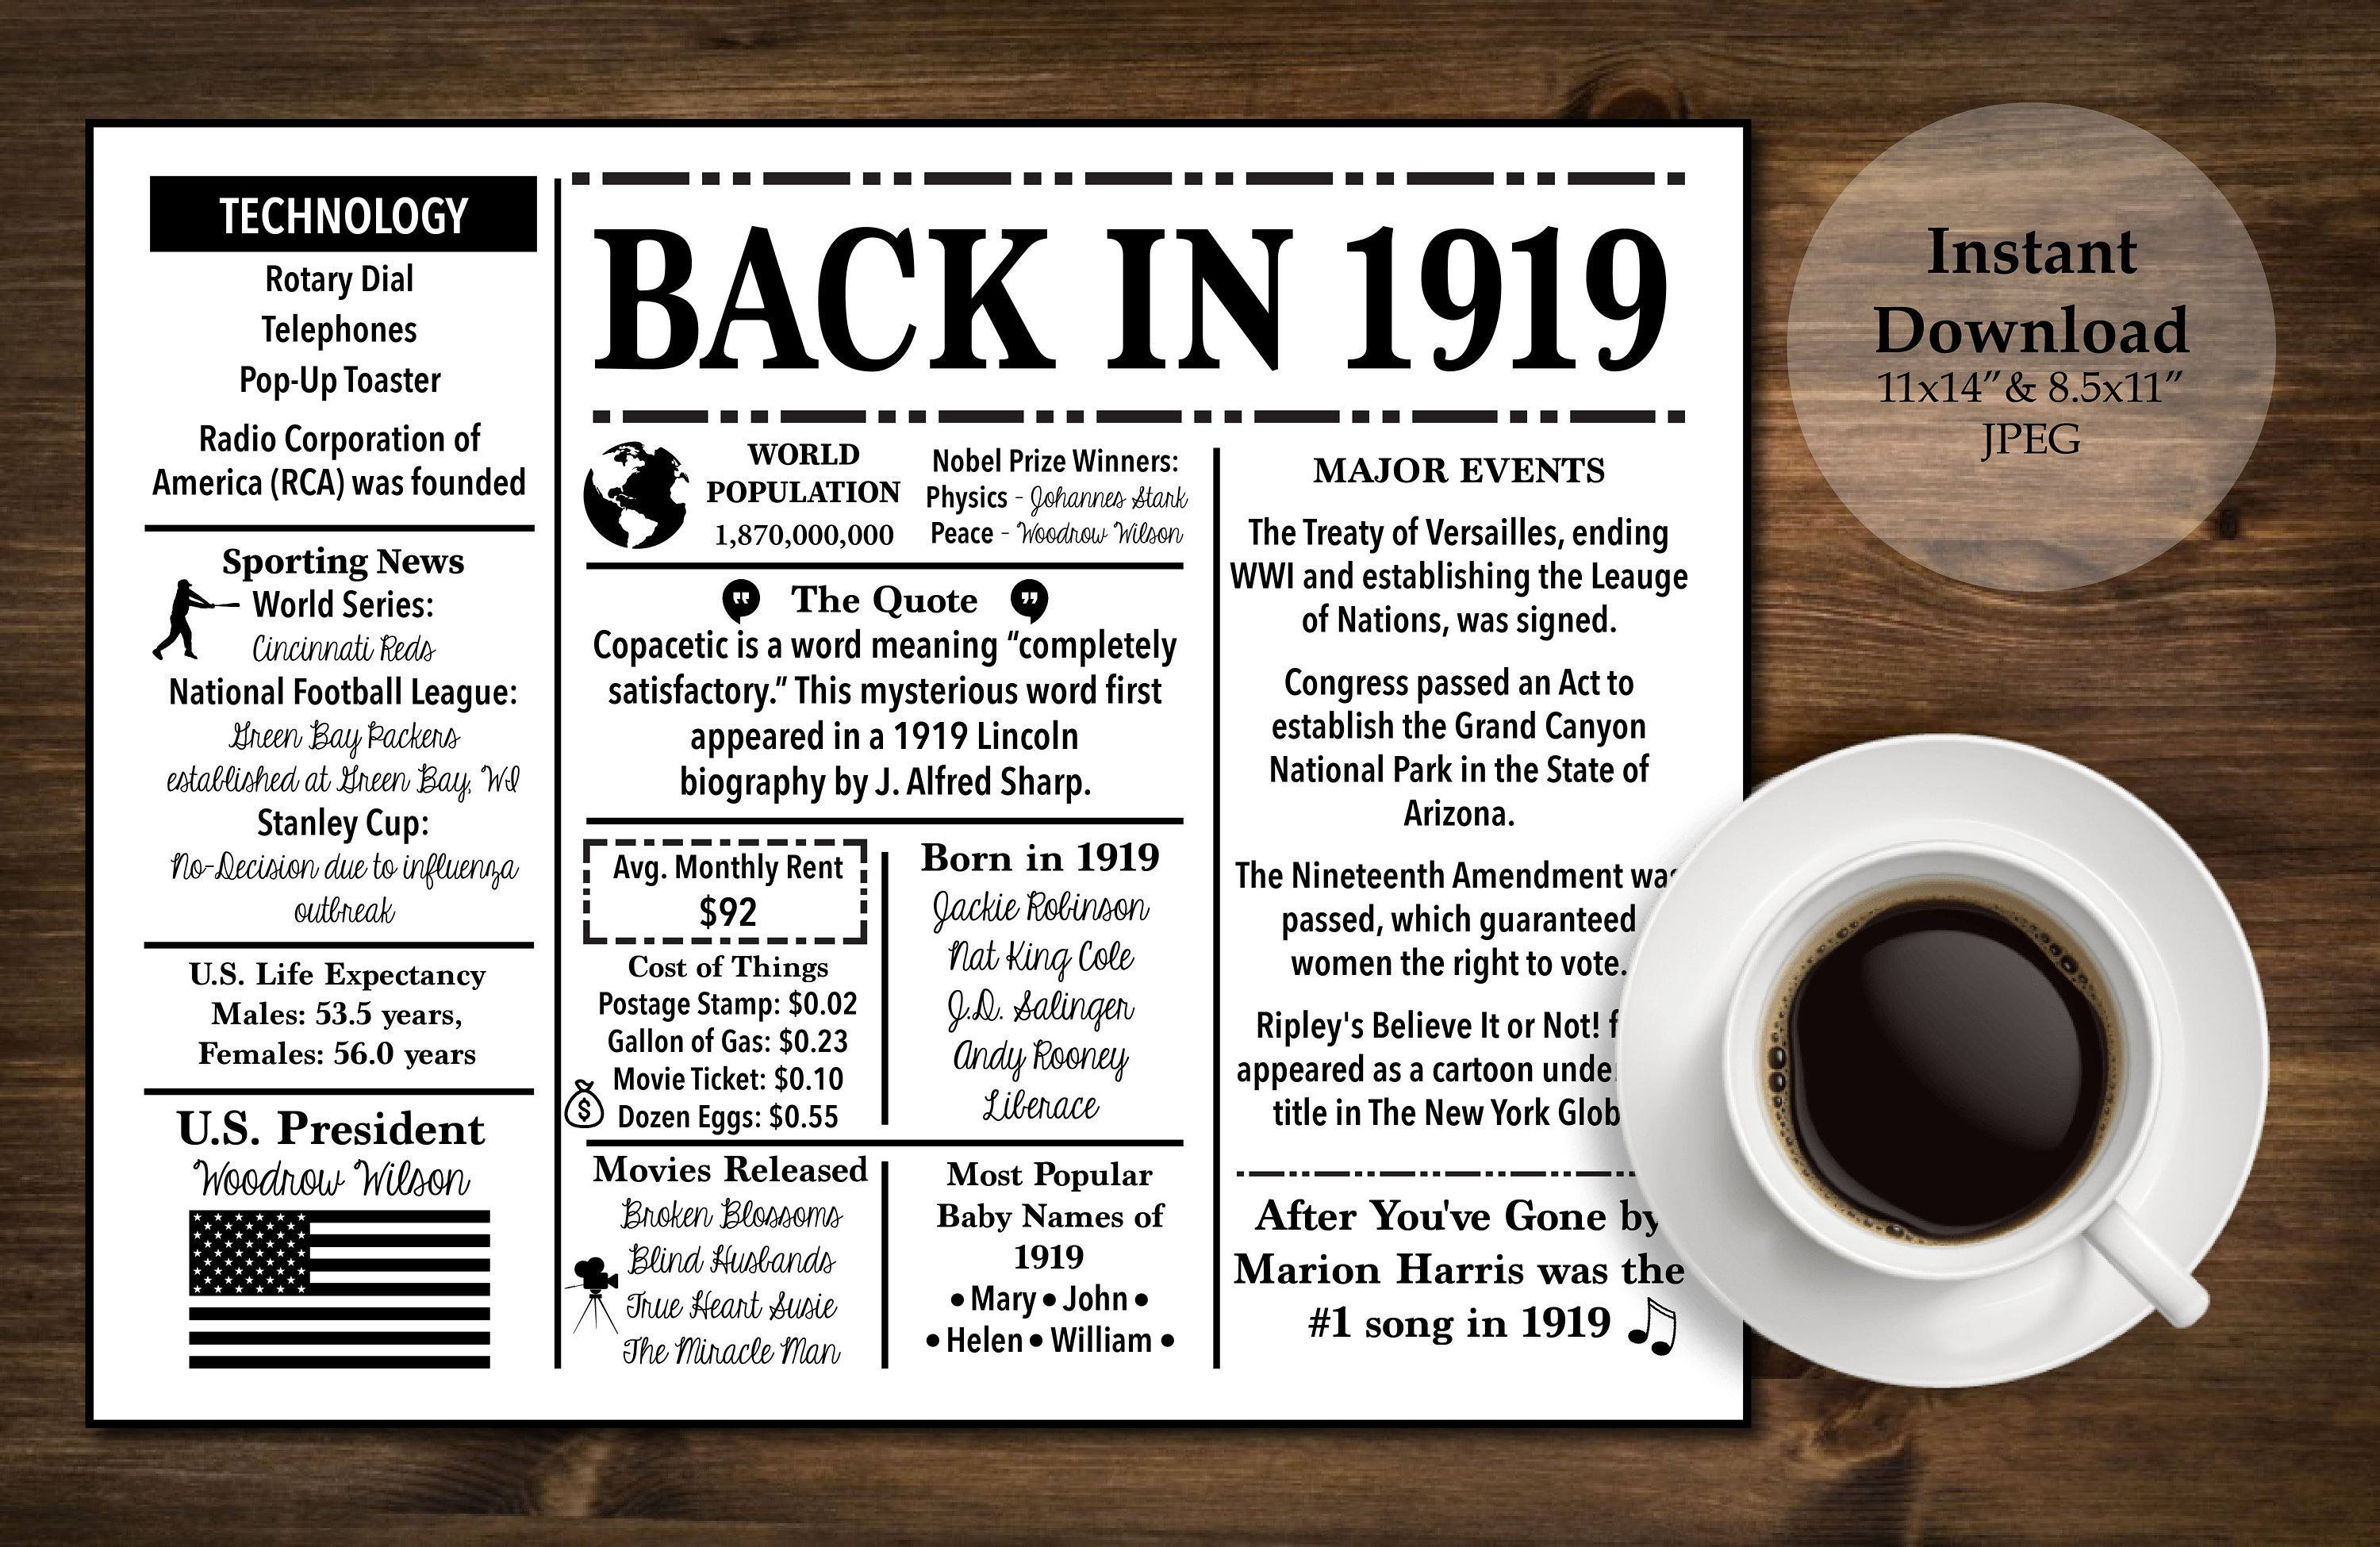 1919 Back in 1919 Dinner Placemat, Birthday 1919 Facts 11x14